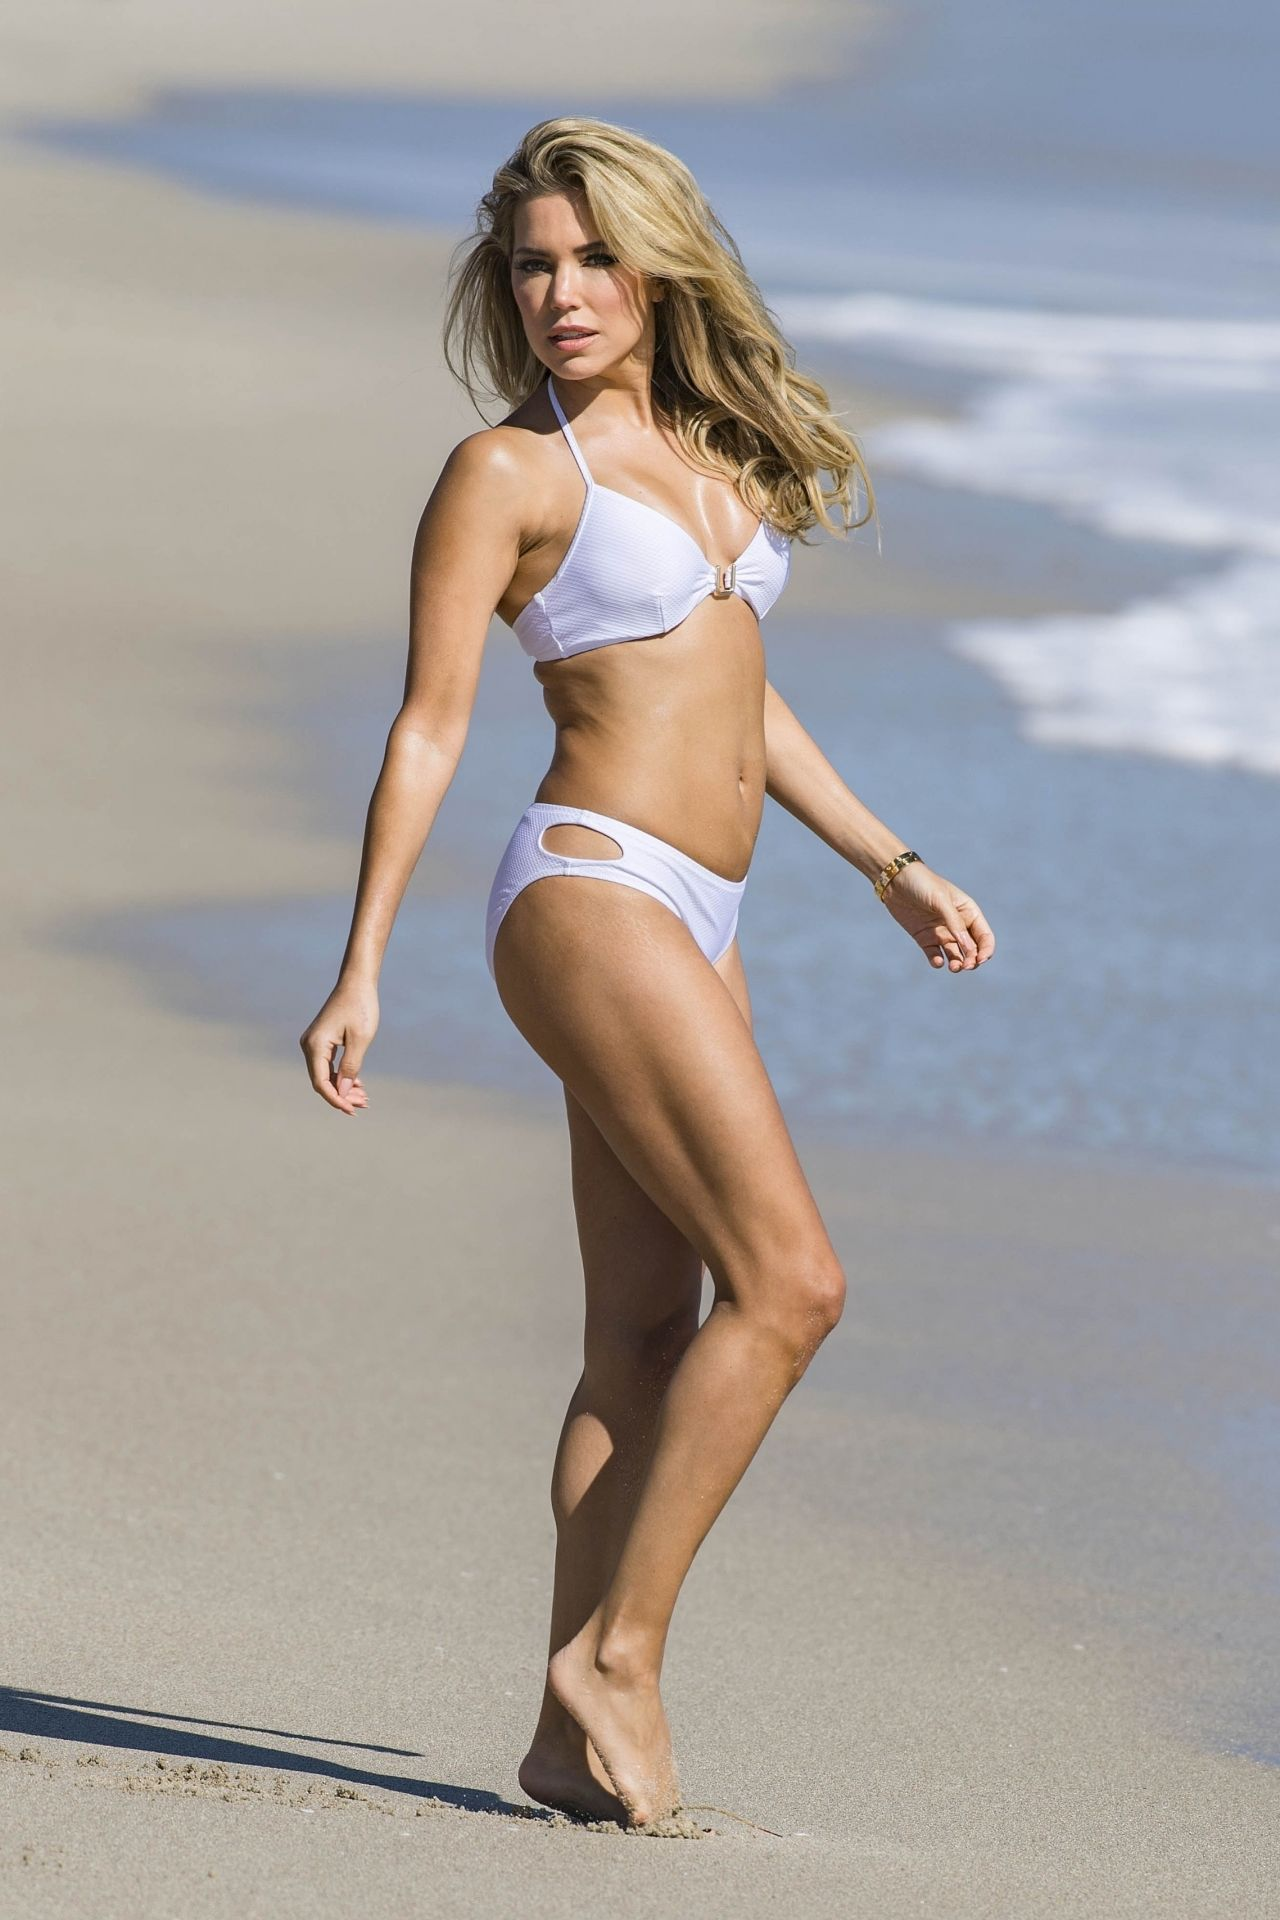 Sylvie Meis in Black Bikini on the beach in Miami Pic 28 of 35